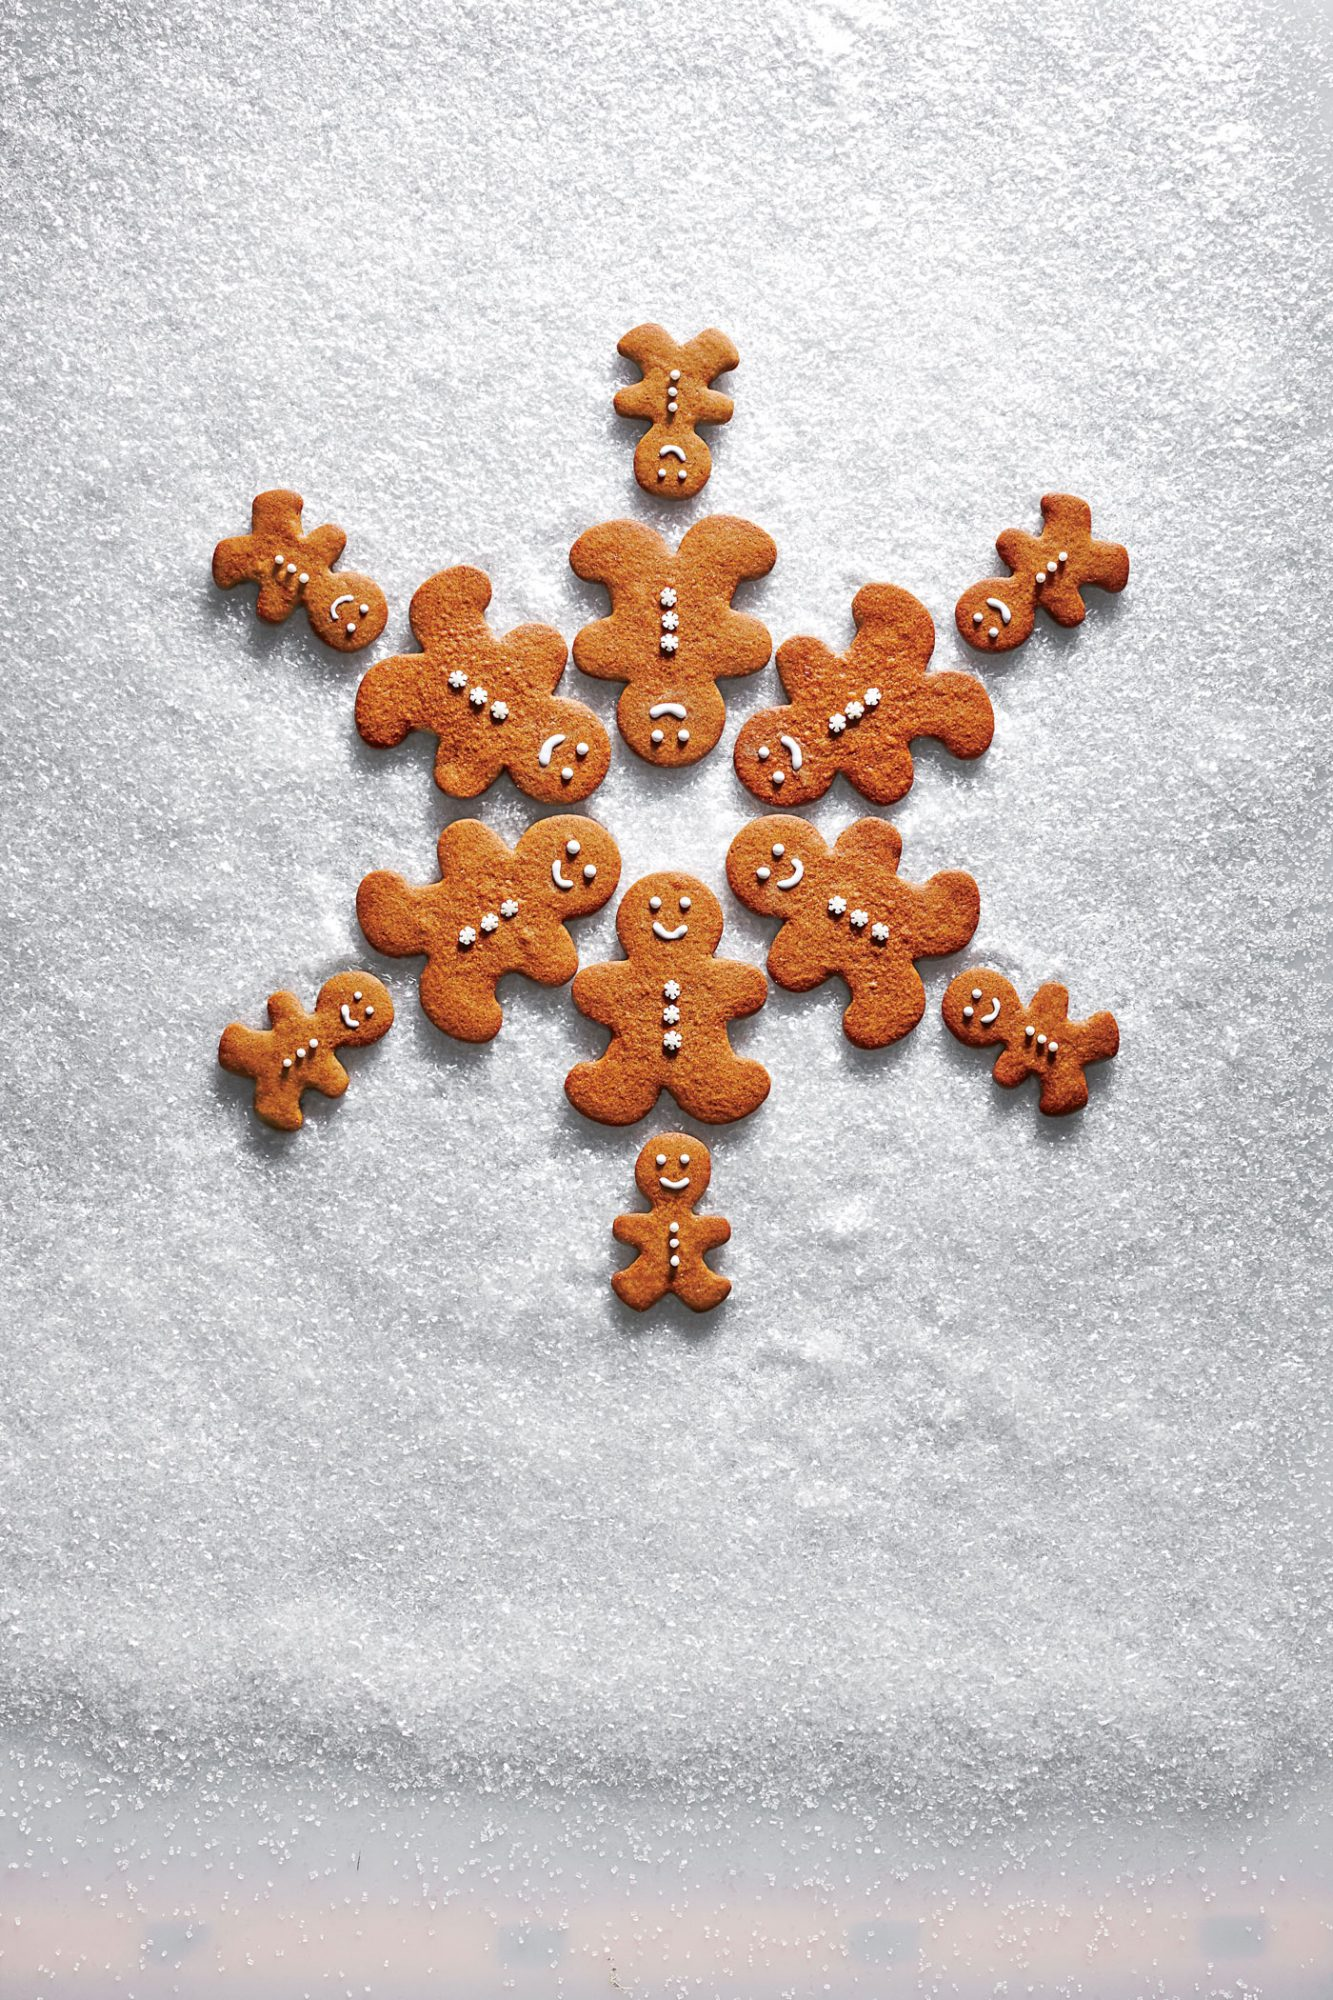 Spicy Molasses Gingerbread People image